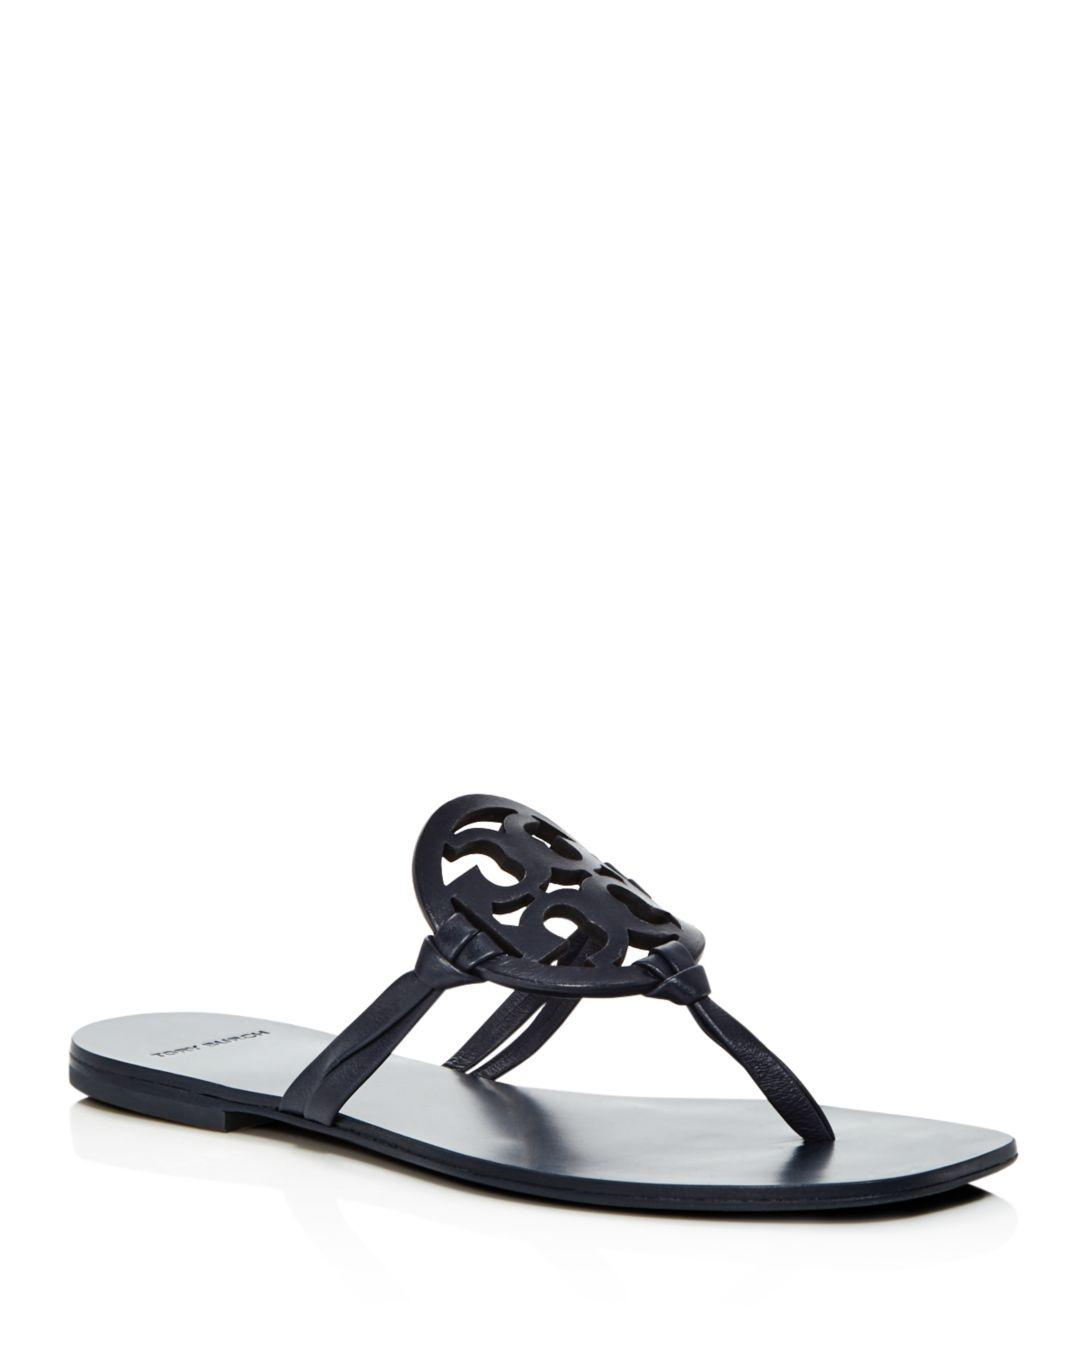 173a25663bc776 Lyst - Tory Burch Women s Miller Square Toe Leather Thong Sandals